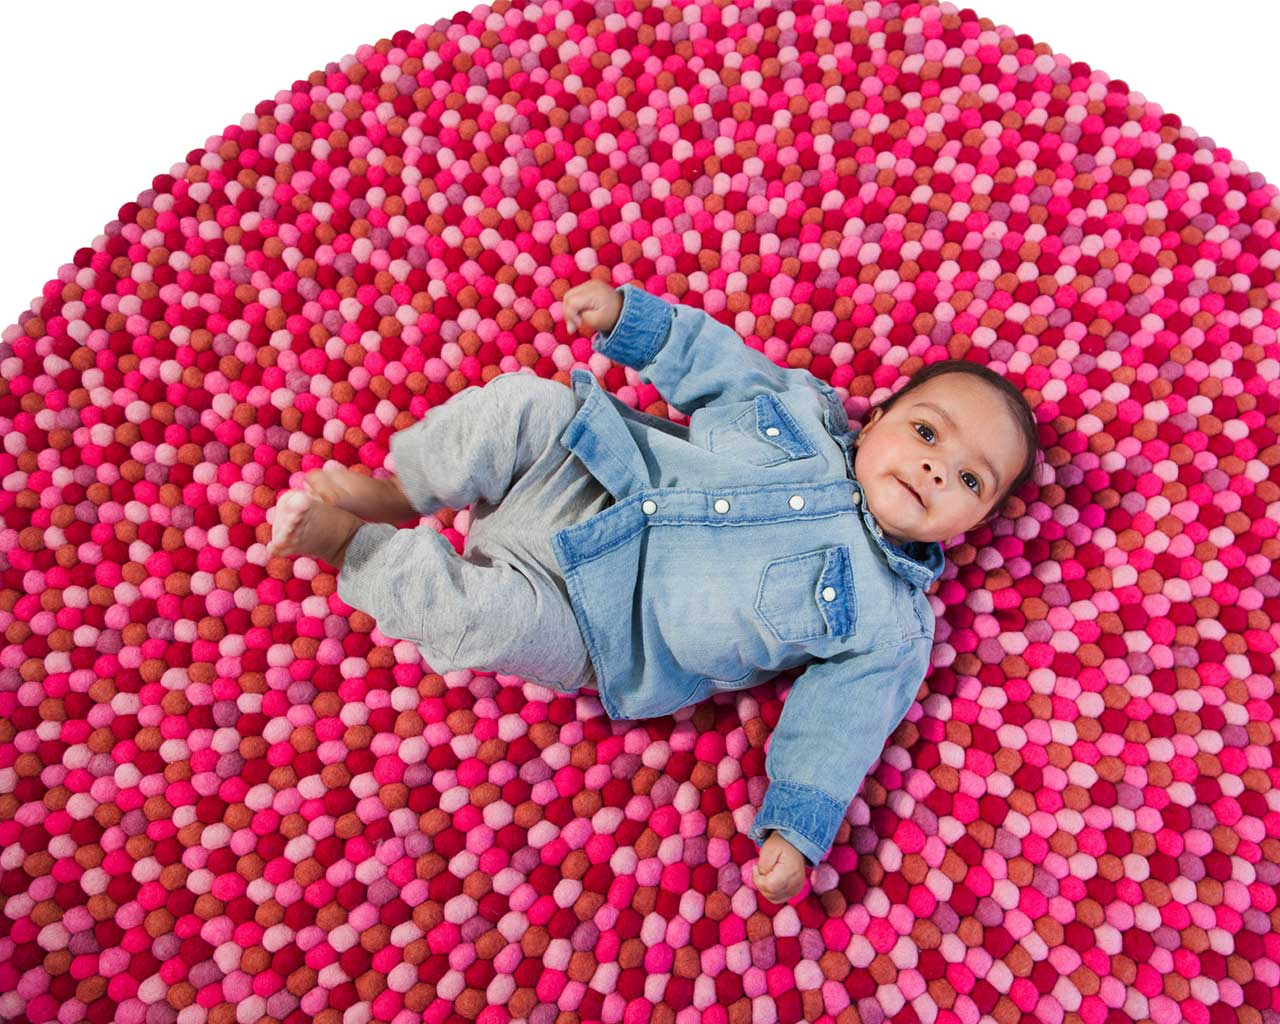 danish design felt ball carpet with baby in jeans